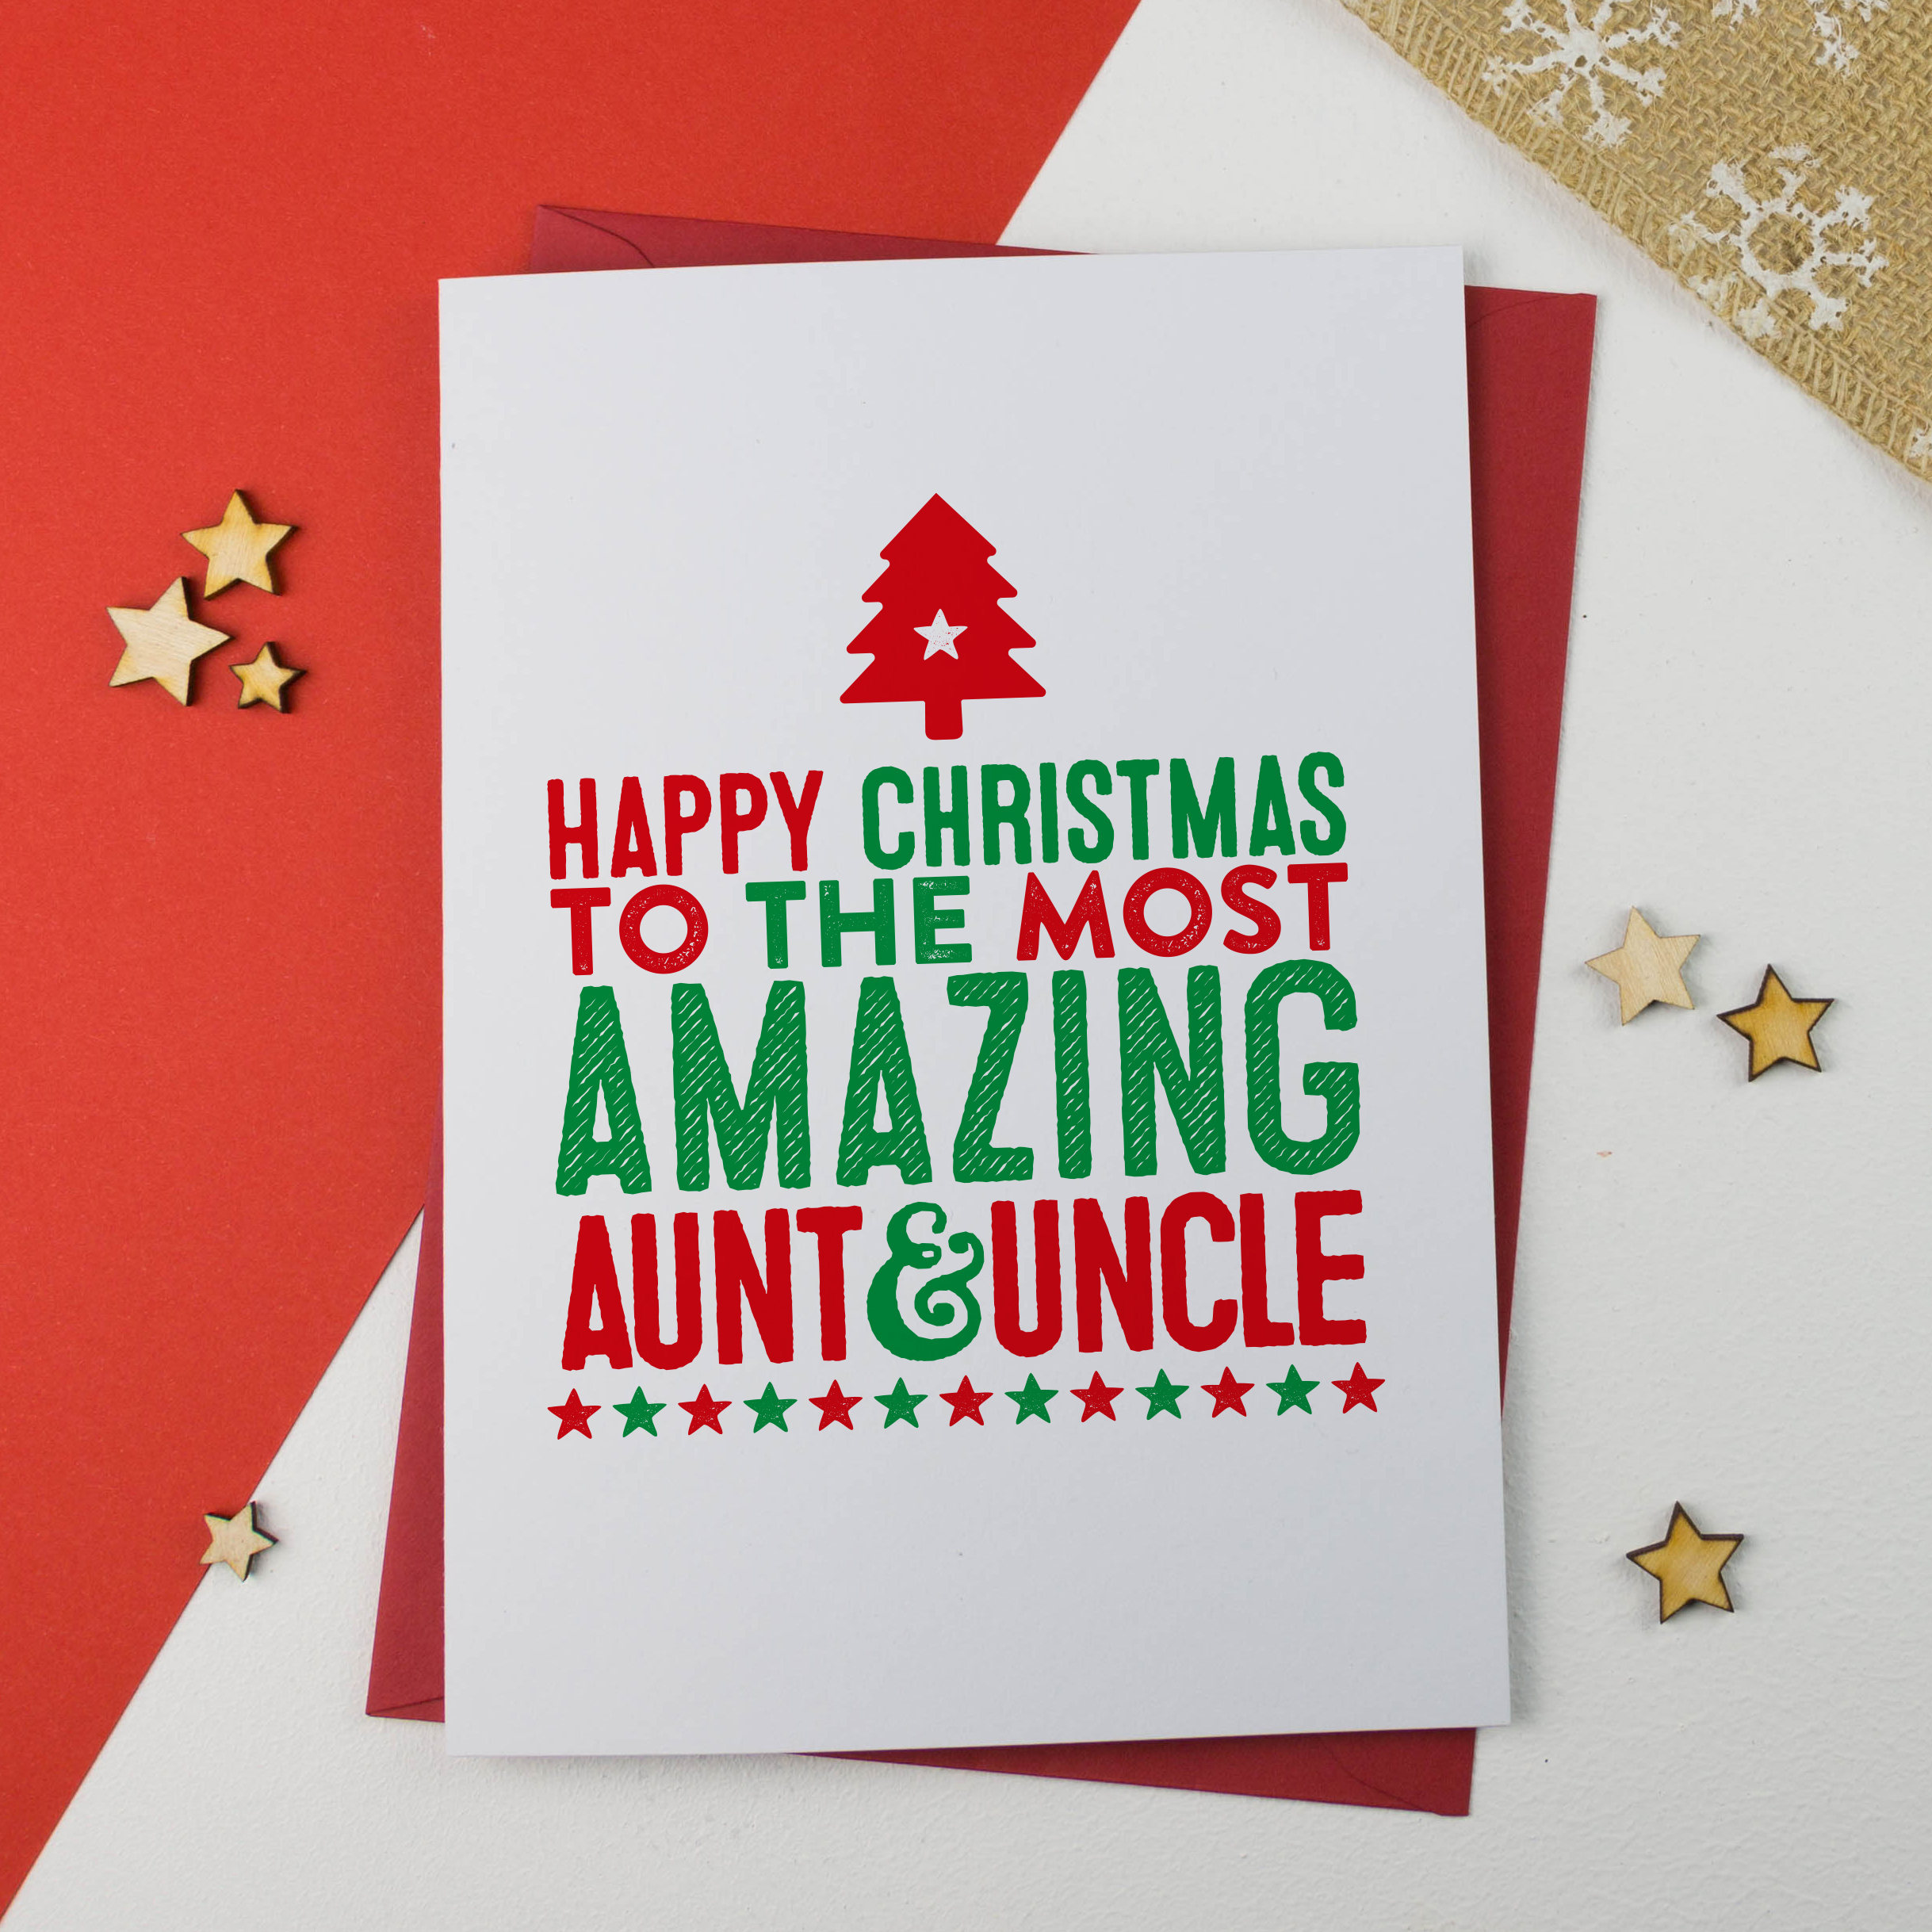 Aunt and uncle christmas card auntie and uncle christmas zoom kristyandbryce Choice Image